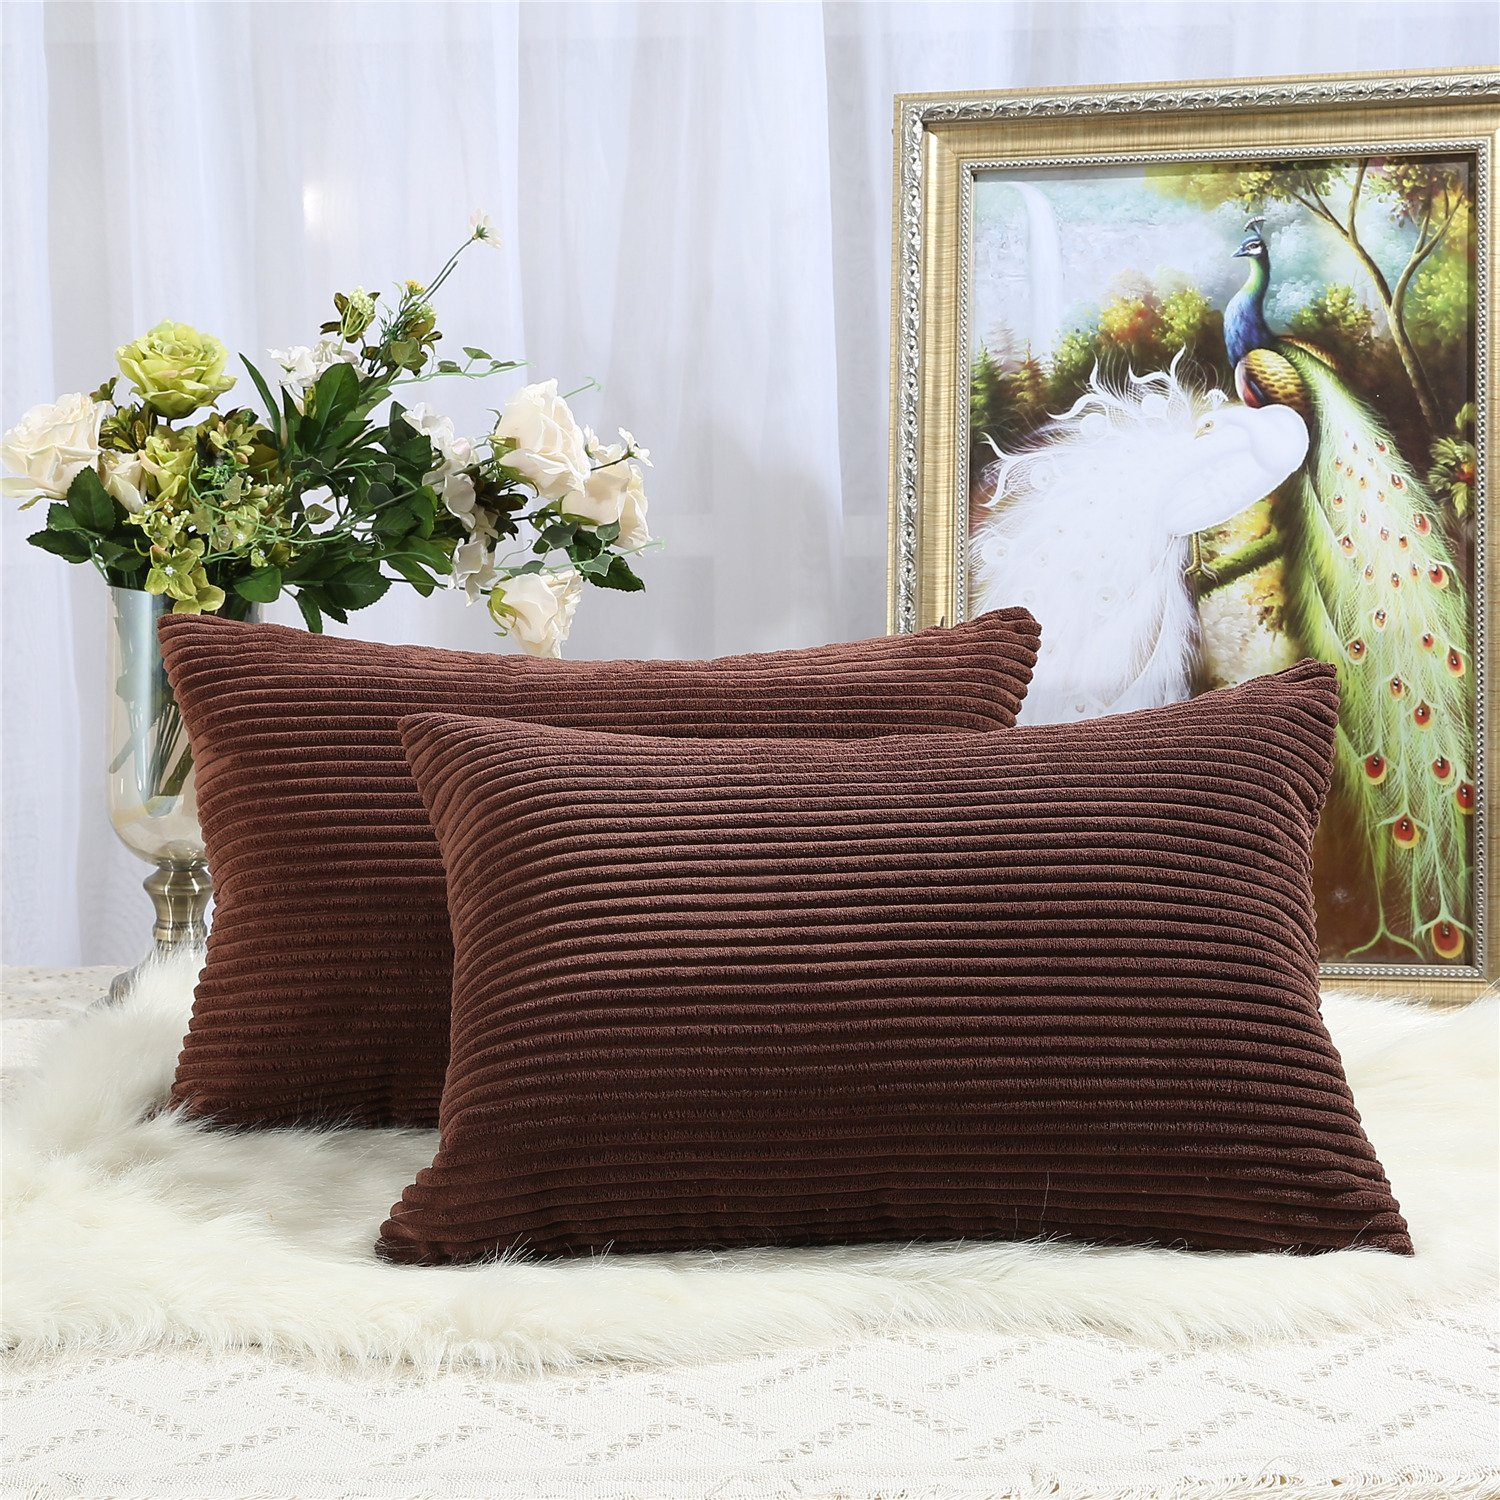 Miaote Pack of 2 Decorative Throw Pillow Covers Cases for Couch Bed Sofa,Striped Corduroy Velvet Cushion Covers for Baby, 16 X 24 Inches,Brown